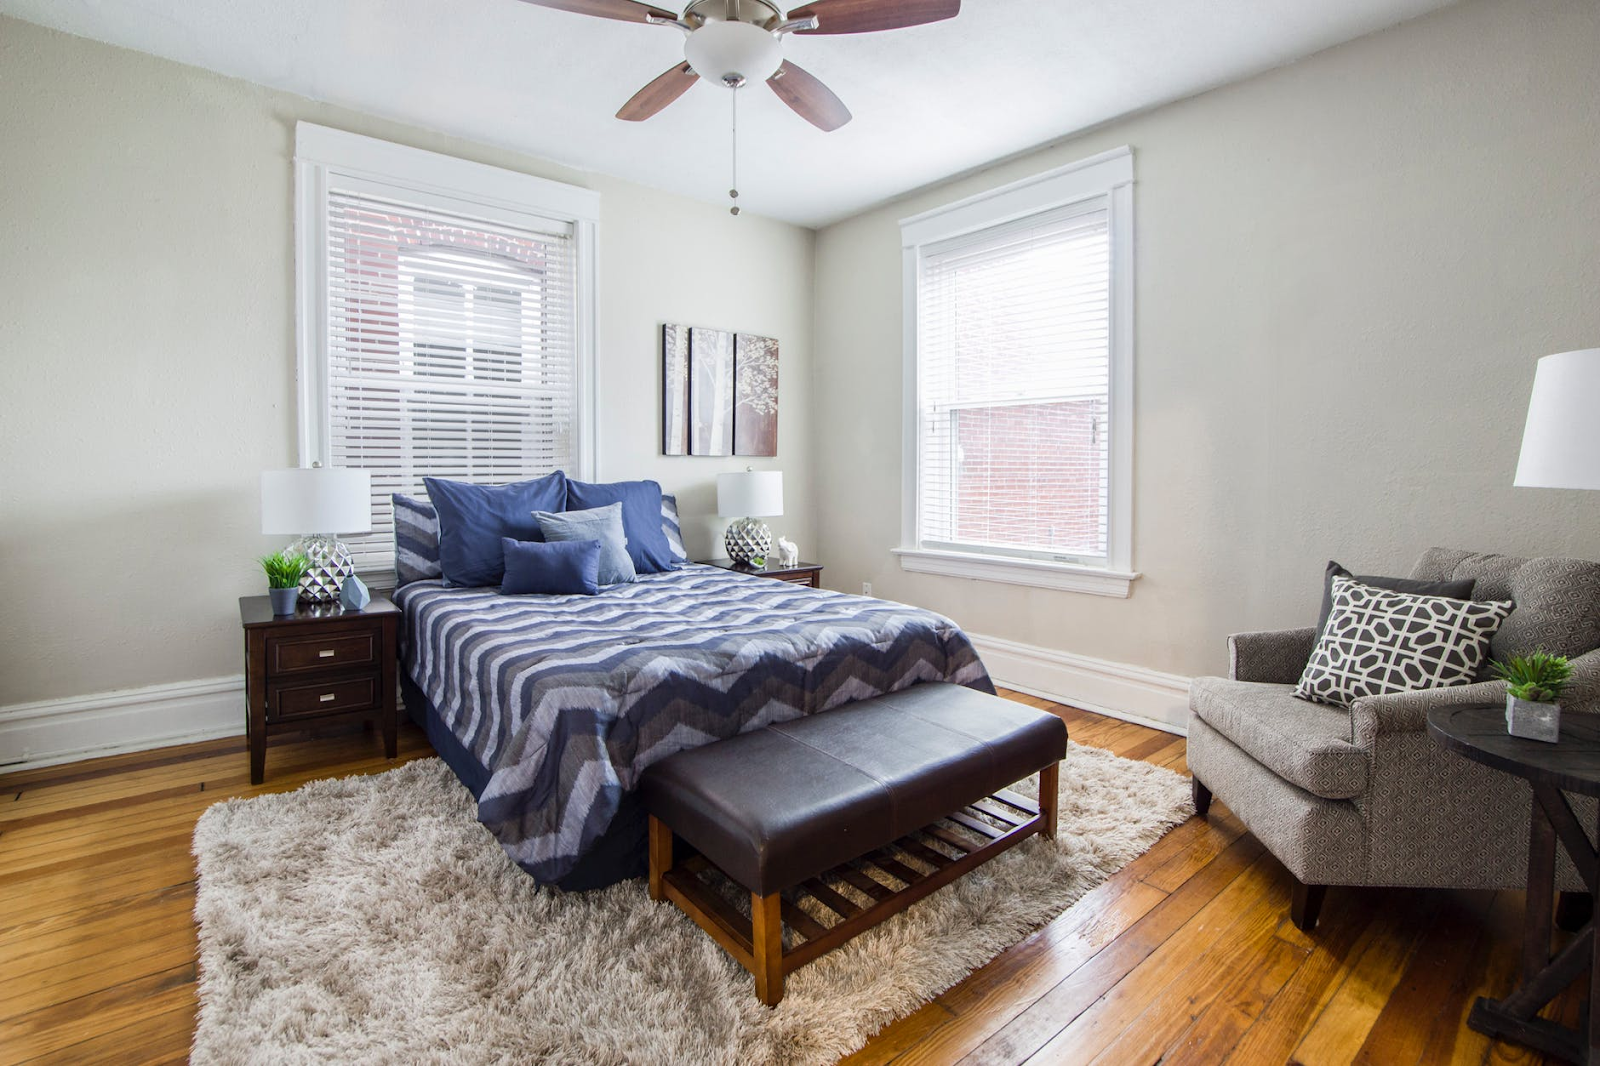 A bedroom with a cozy bed, a rug, and a plush arm chair